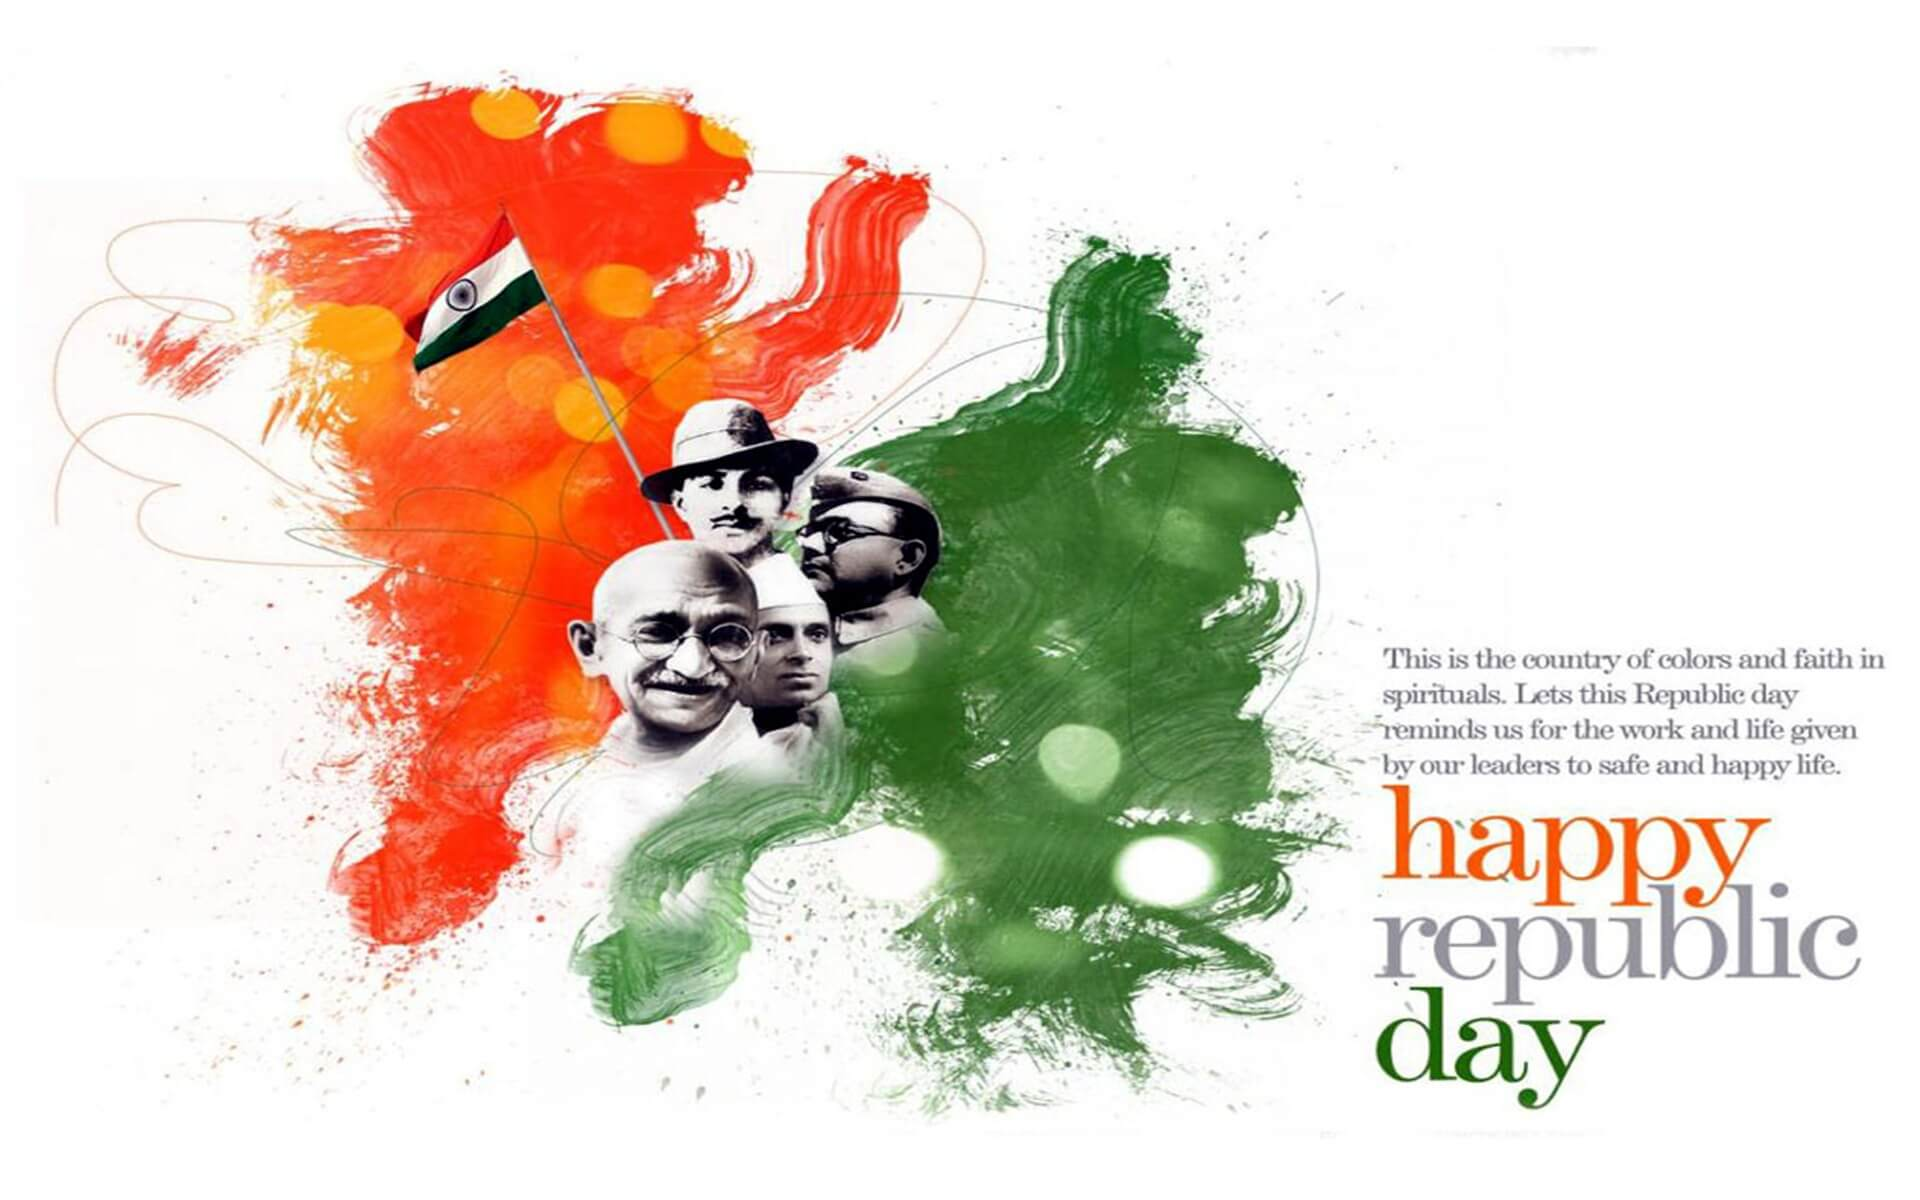 happy republic day wishes india january 26 freedom fighters hd pc wallpaper